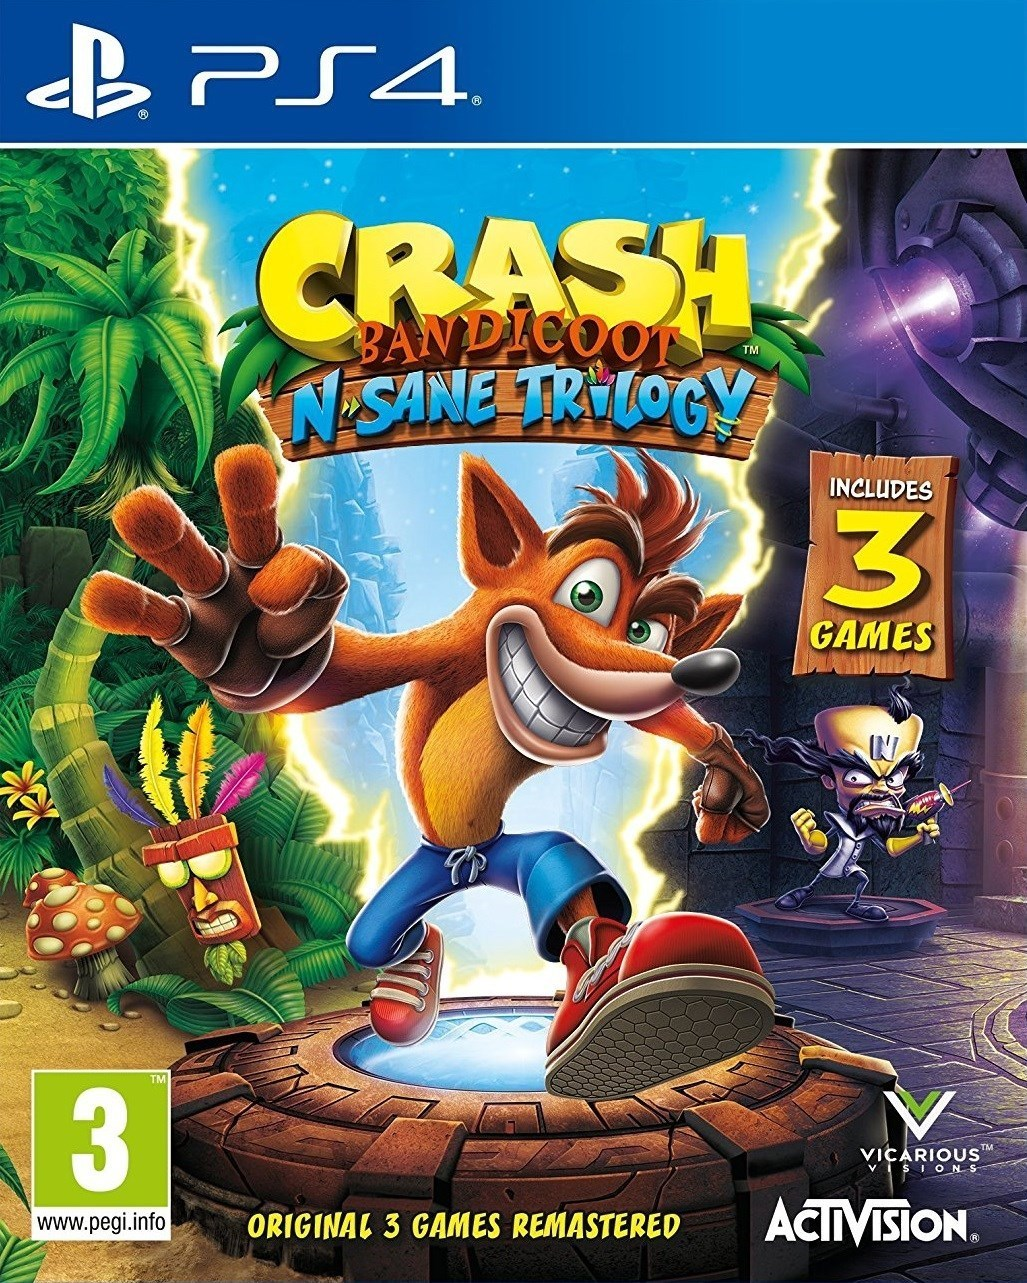 Crash Bandicoot N: Sane Trilogy